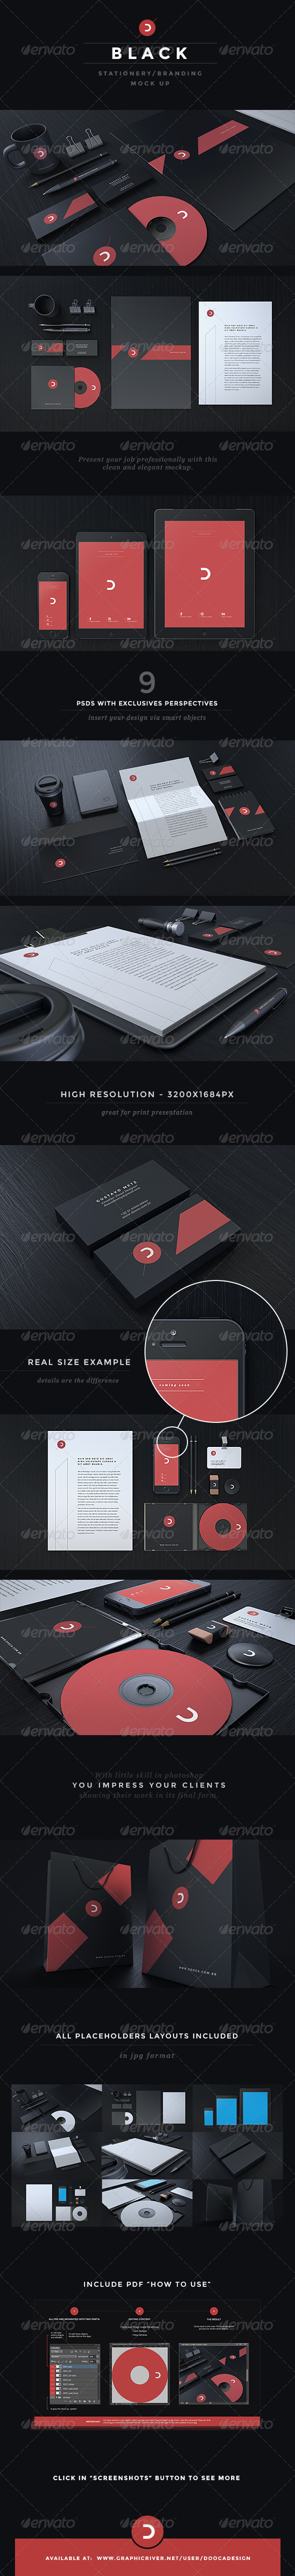 Black Stationery / Branding Mock-Up - Stationery Print